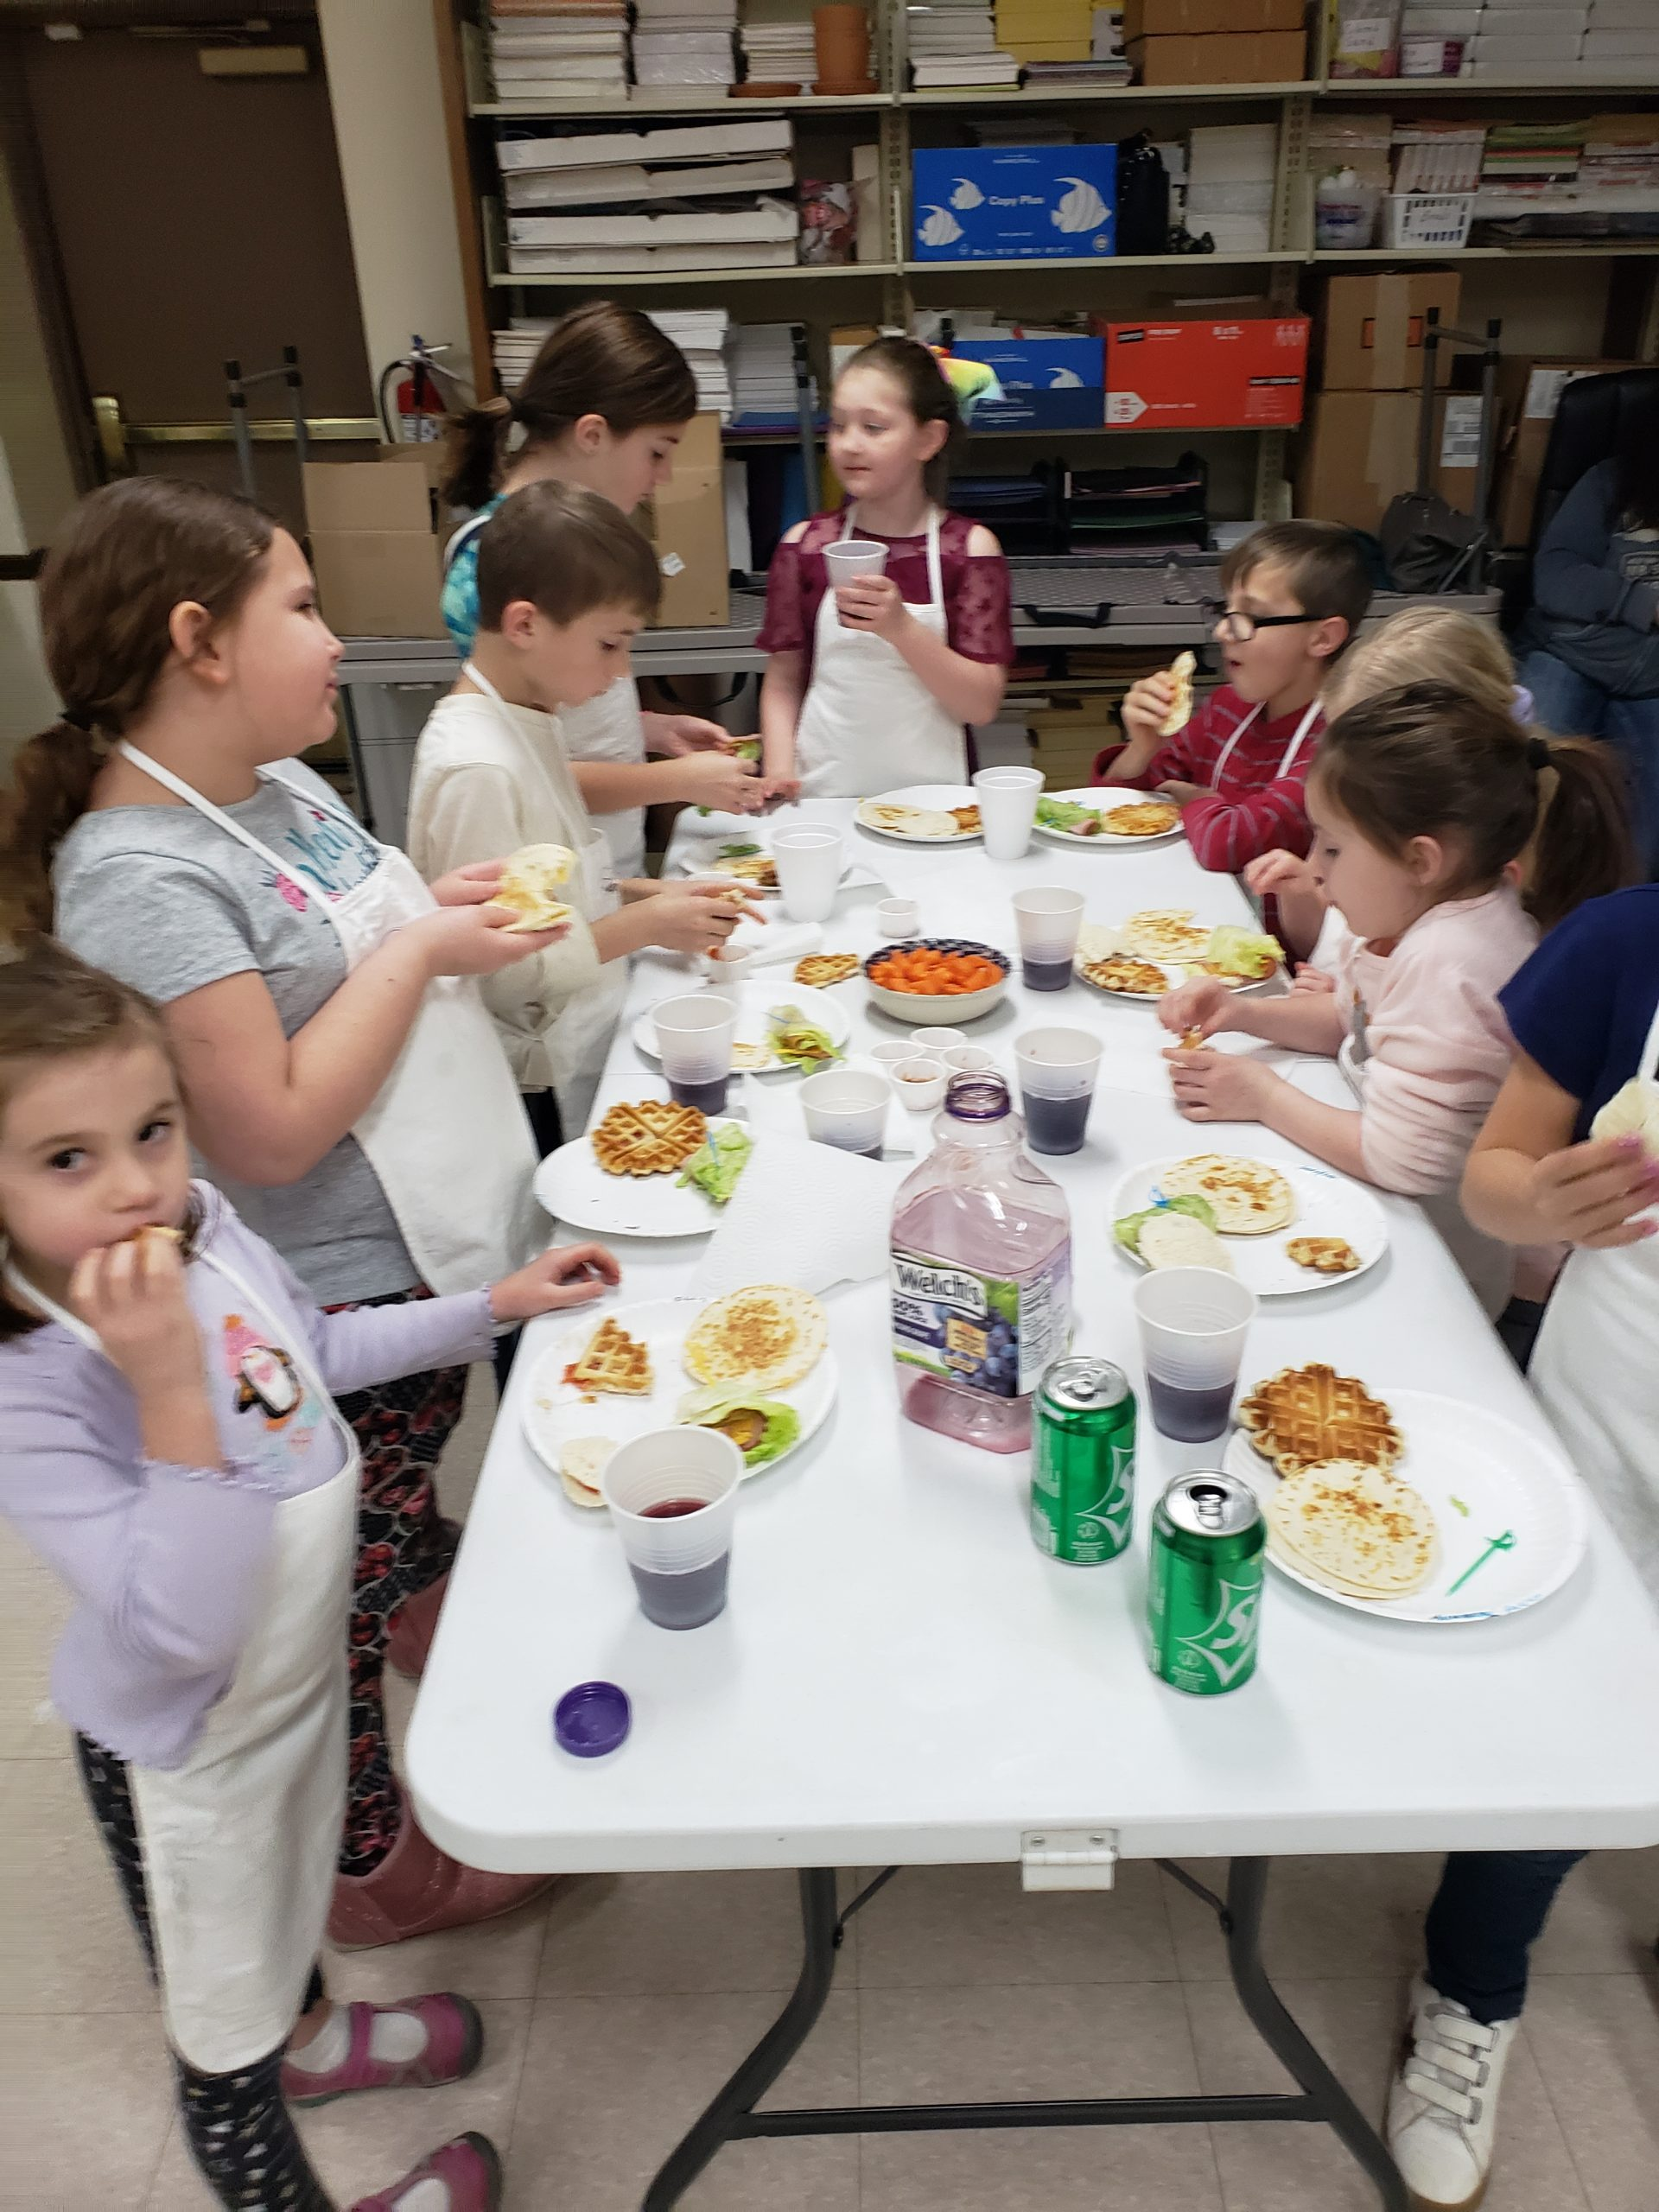 February Kids Cooking Club had a blast with many new dishes and skills learned.